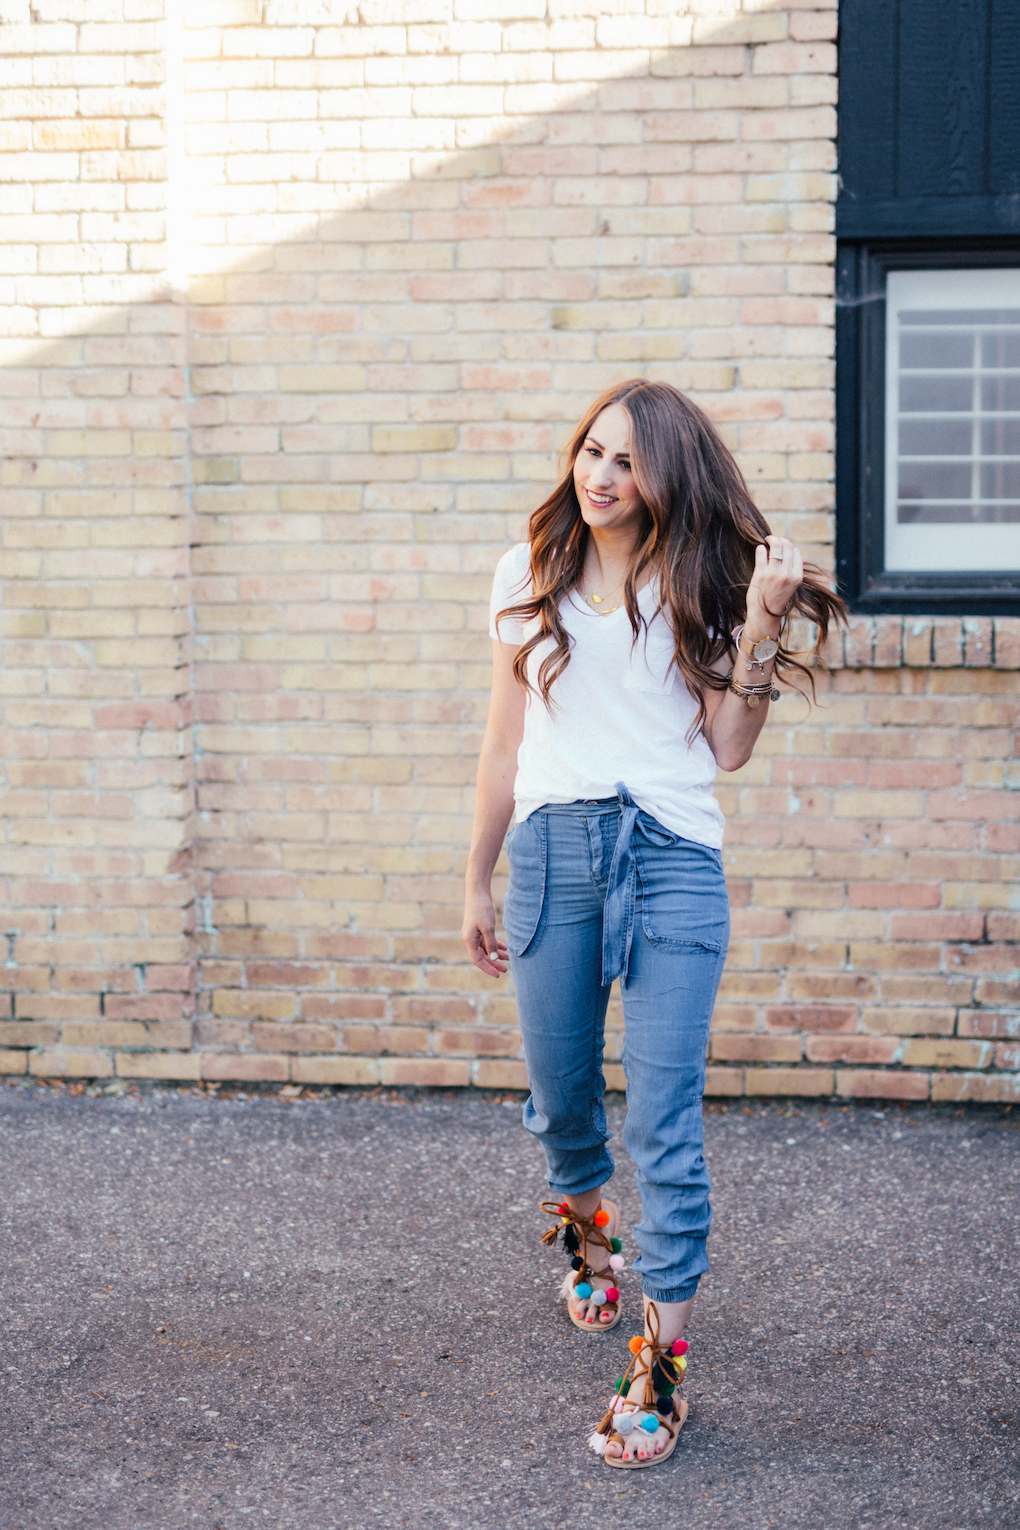 Denim Joggers and white madewell tee with pom pom shoes with long brown curled hair